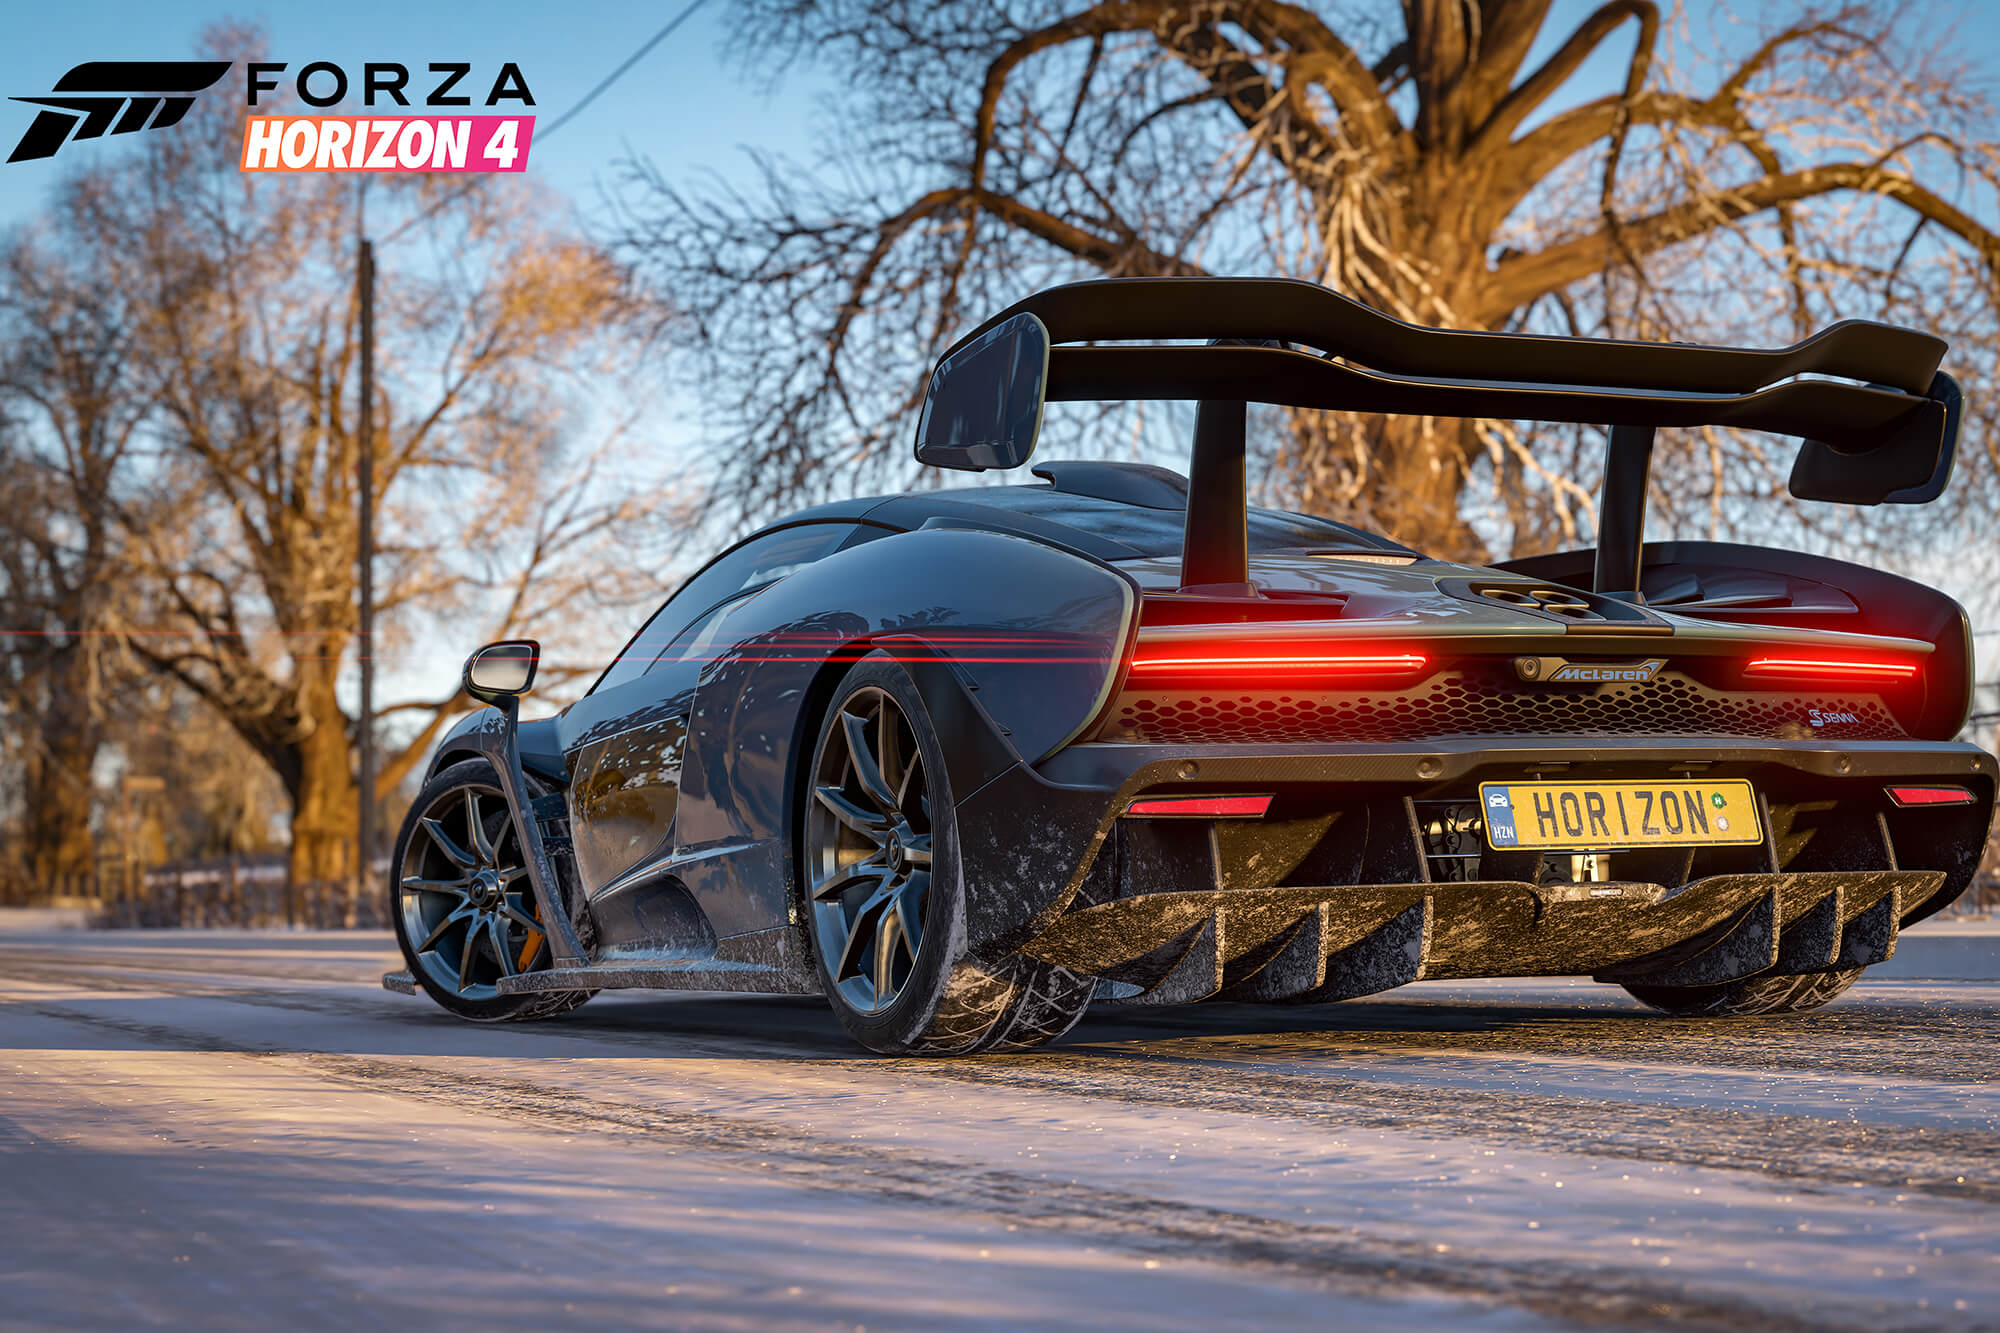 Winter in Forza Horizon 4 Xbox game